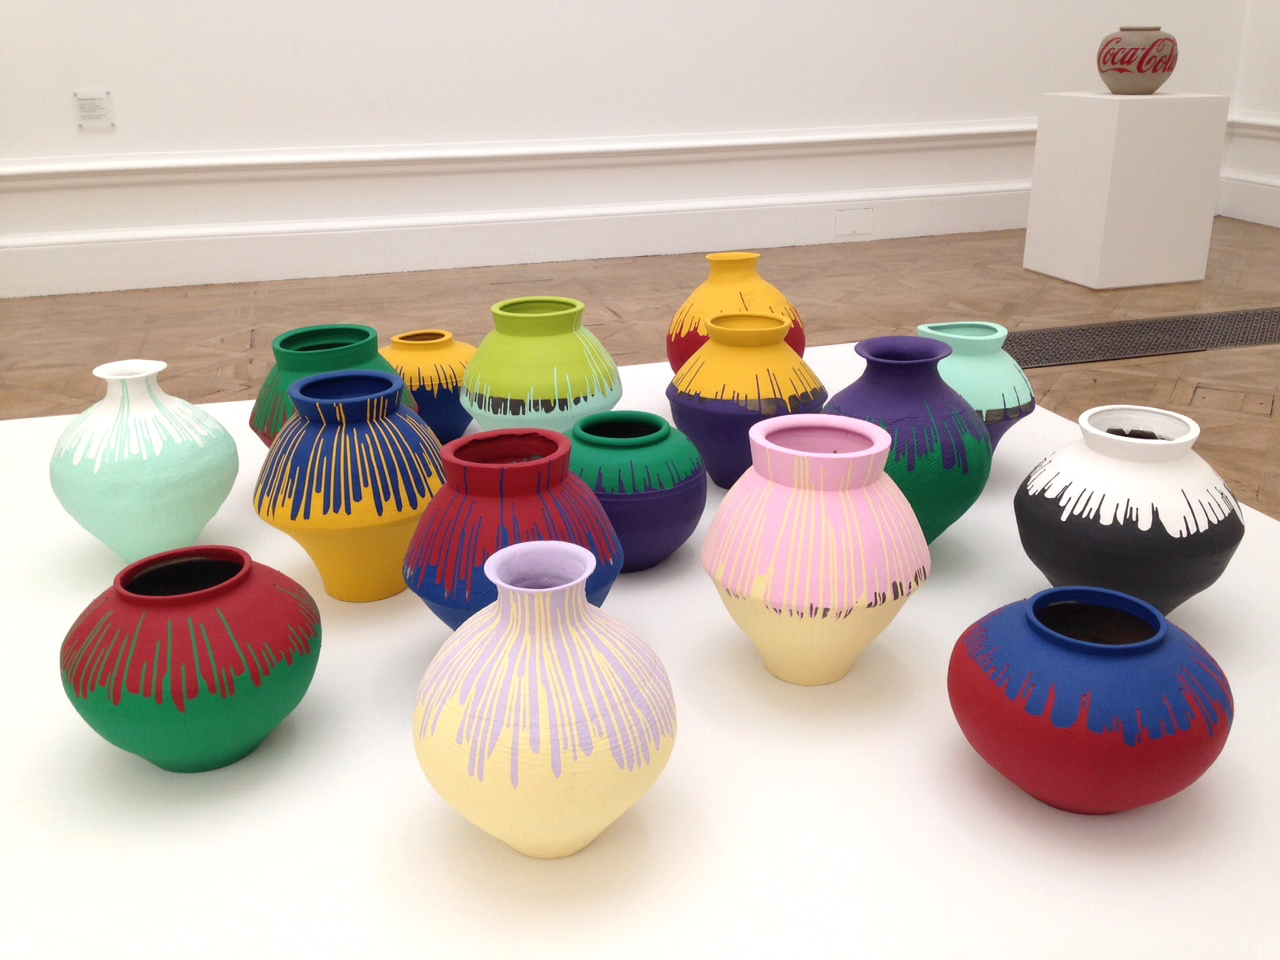 Coloured Vases, 2015. Twelve Han Dynasty (206 BC-220 AD) and four Neolithic (5,000-3,000BC) vases with industrial paint